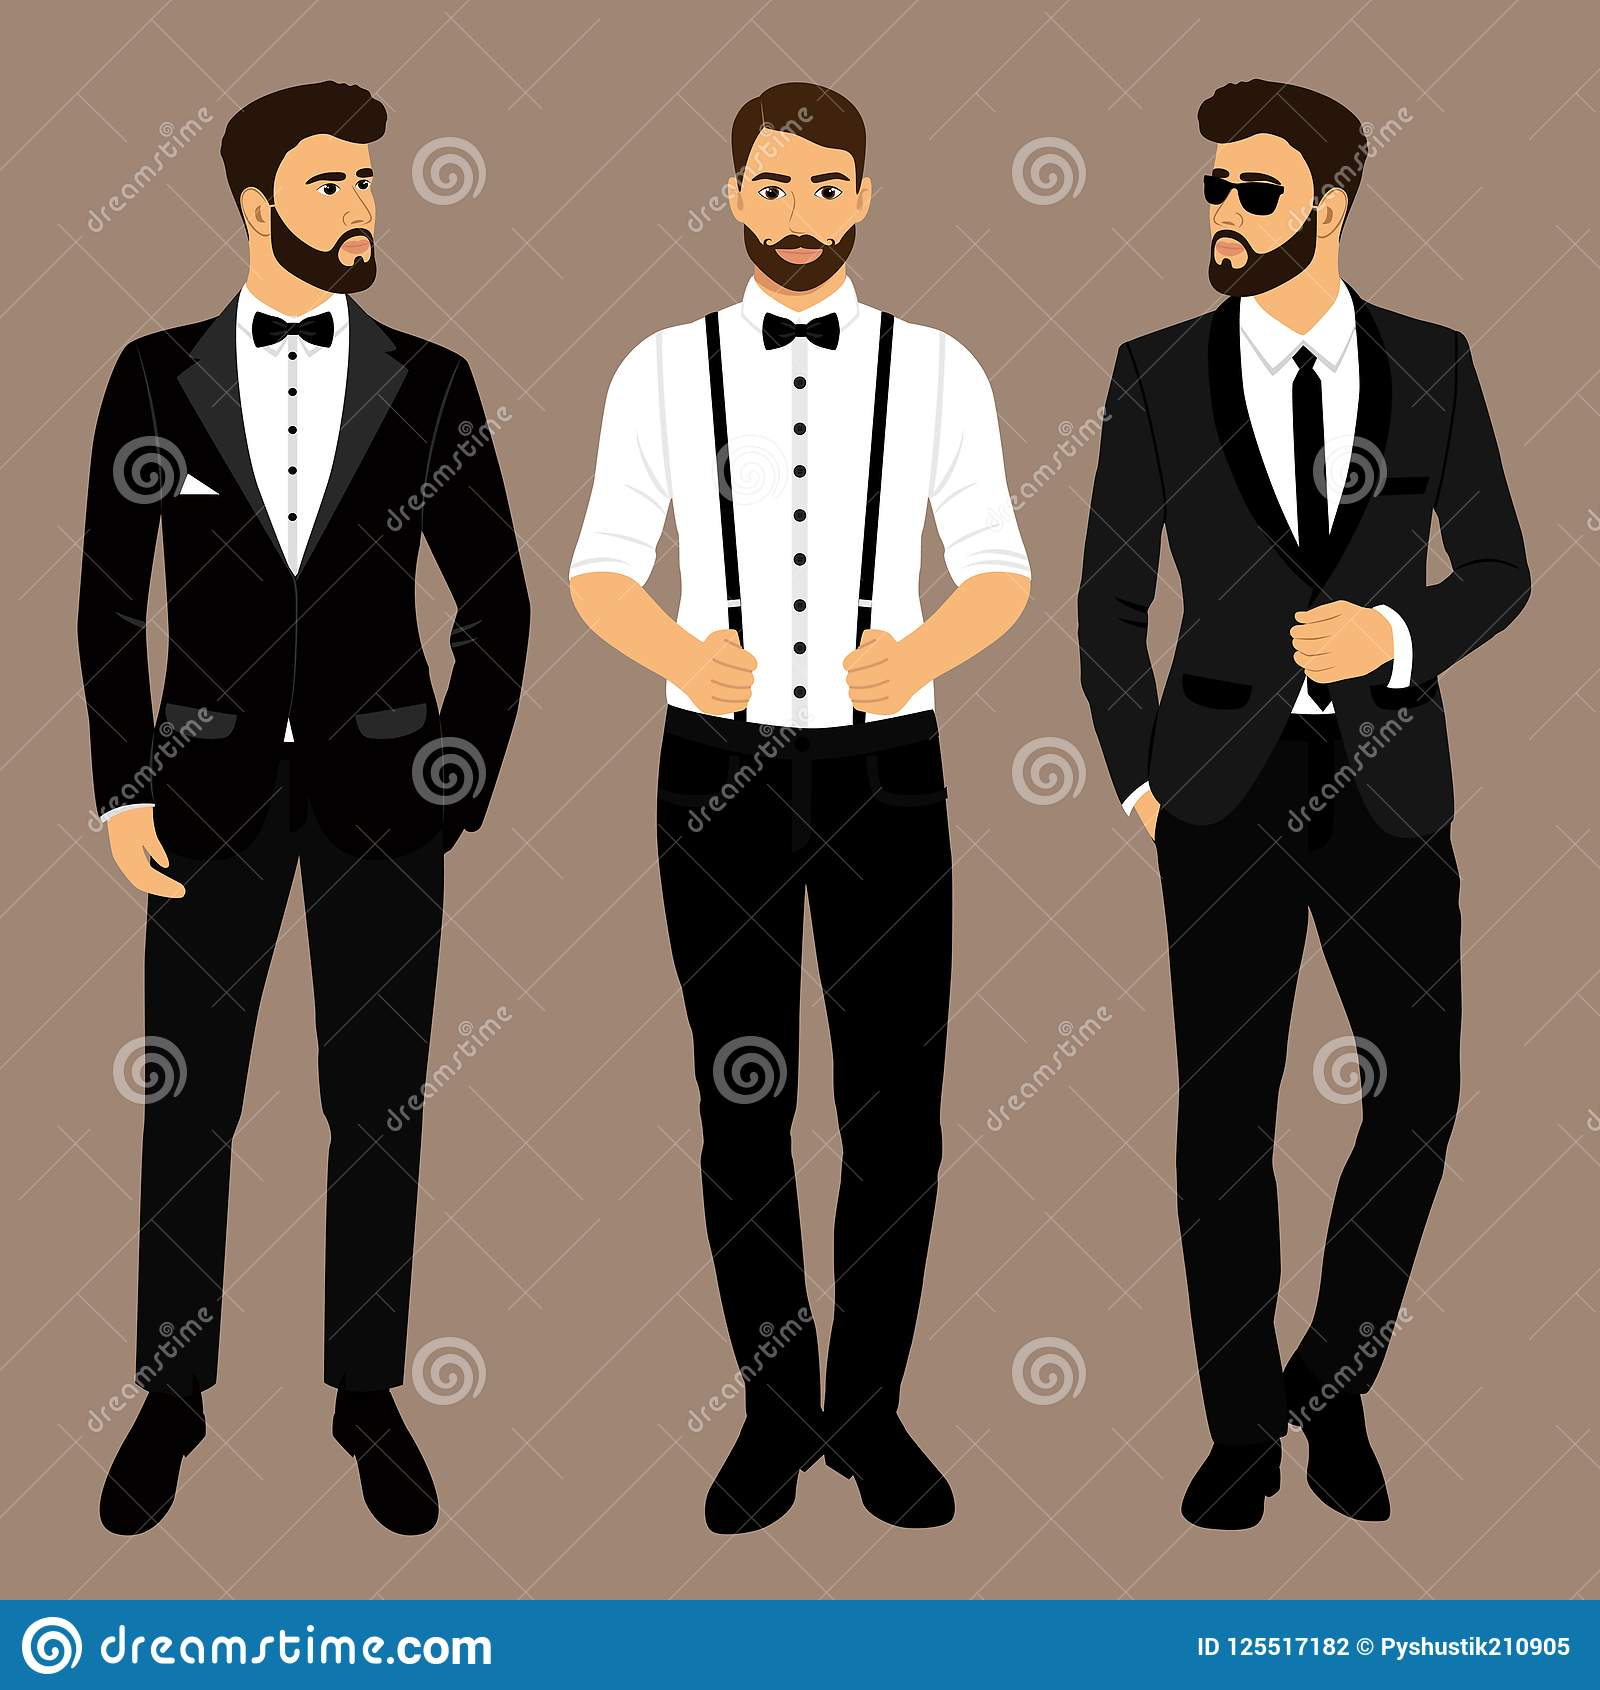 A Man With Suspenders The Groom Clothing Wedding Men S Suit